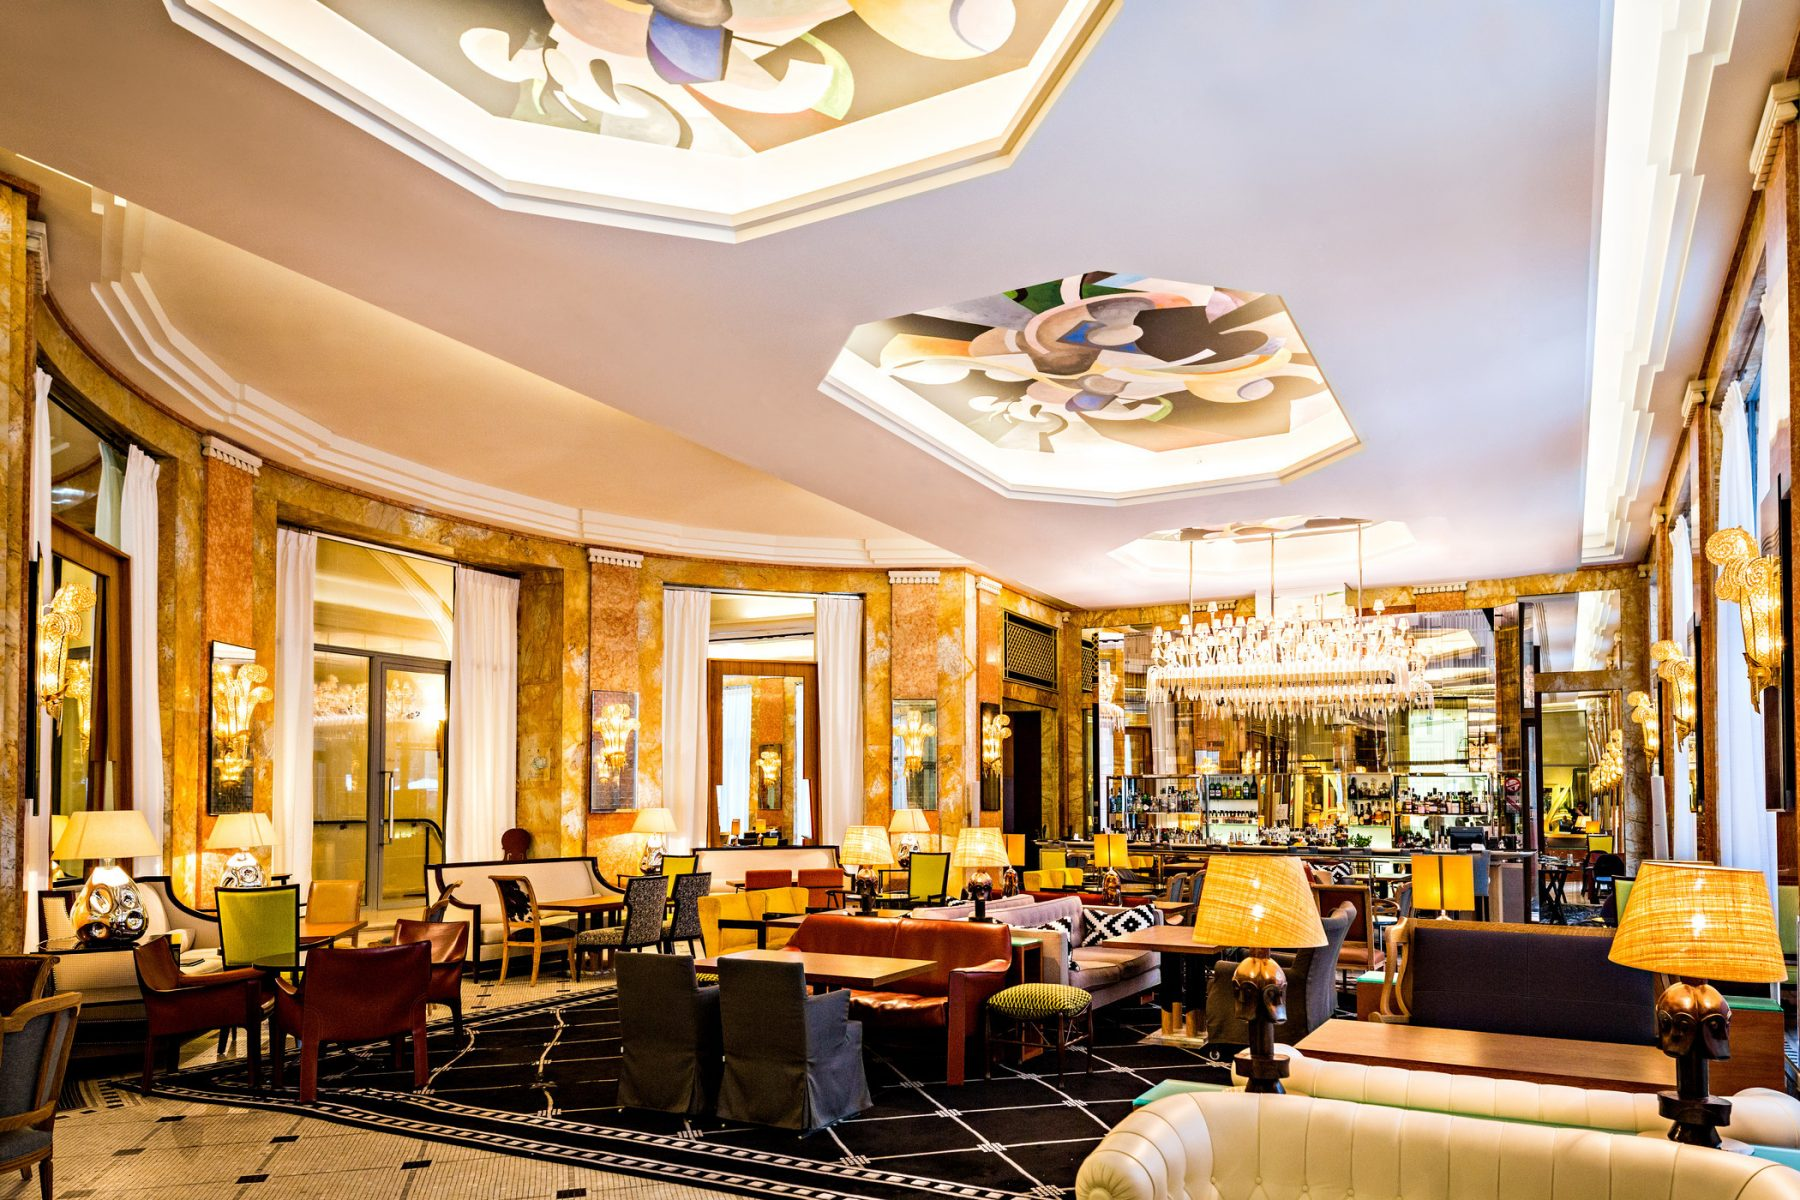 Luxury is The Only Word To Describe This Hotel. Only Steps Away From The Famous Champs-Elysee, You Will Be In The Heart of Paris